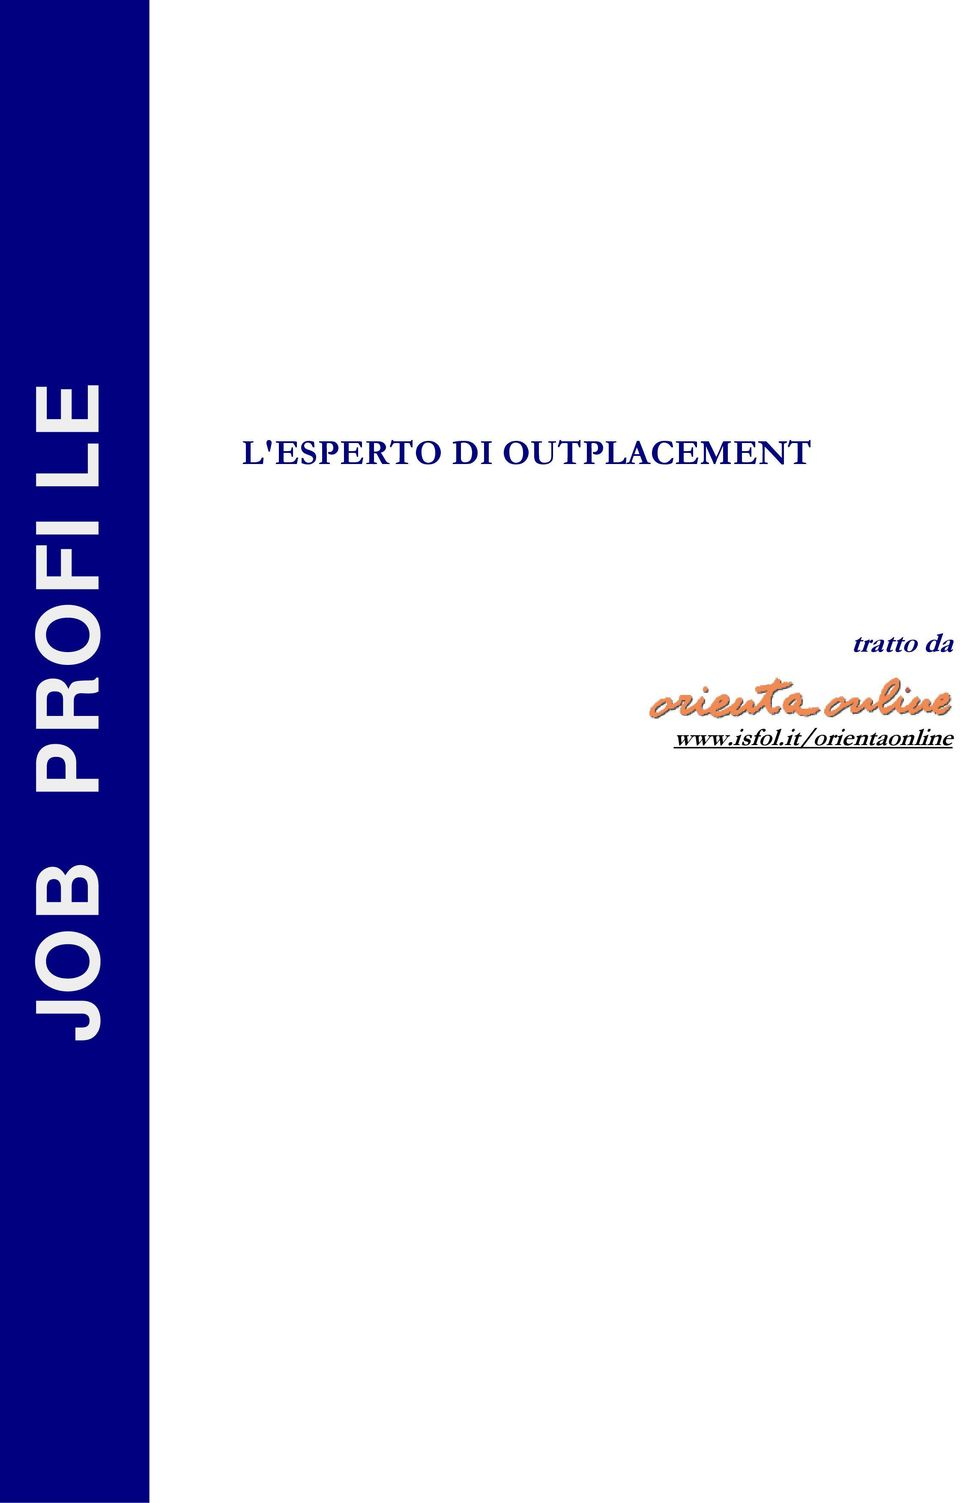 OUTPLACEMENT tratto da